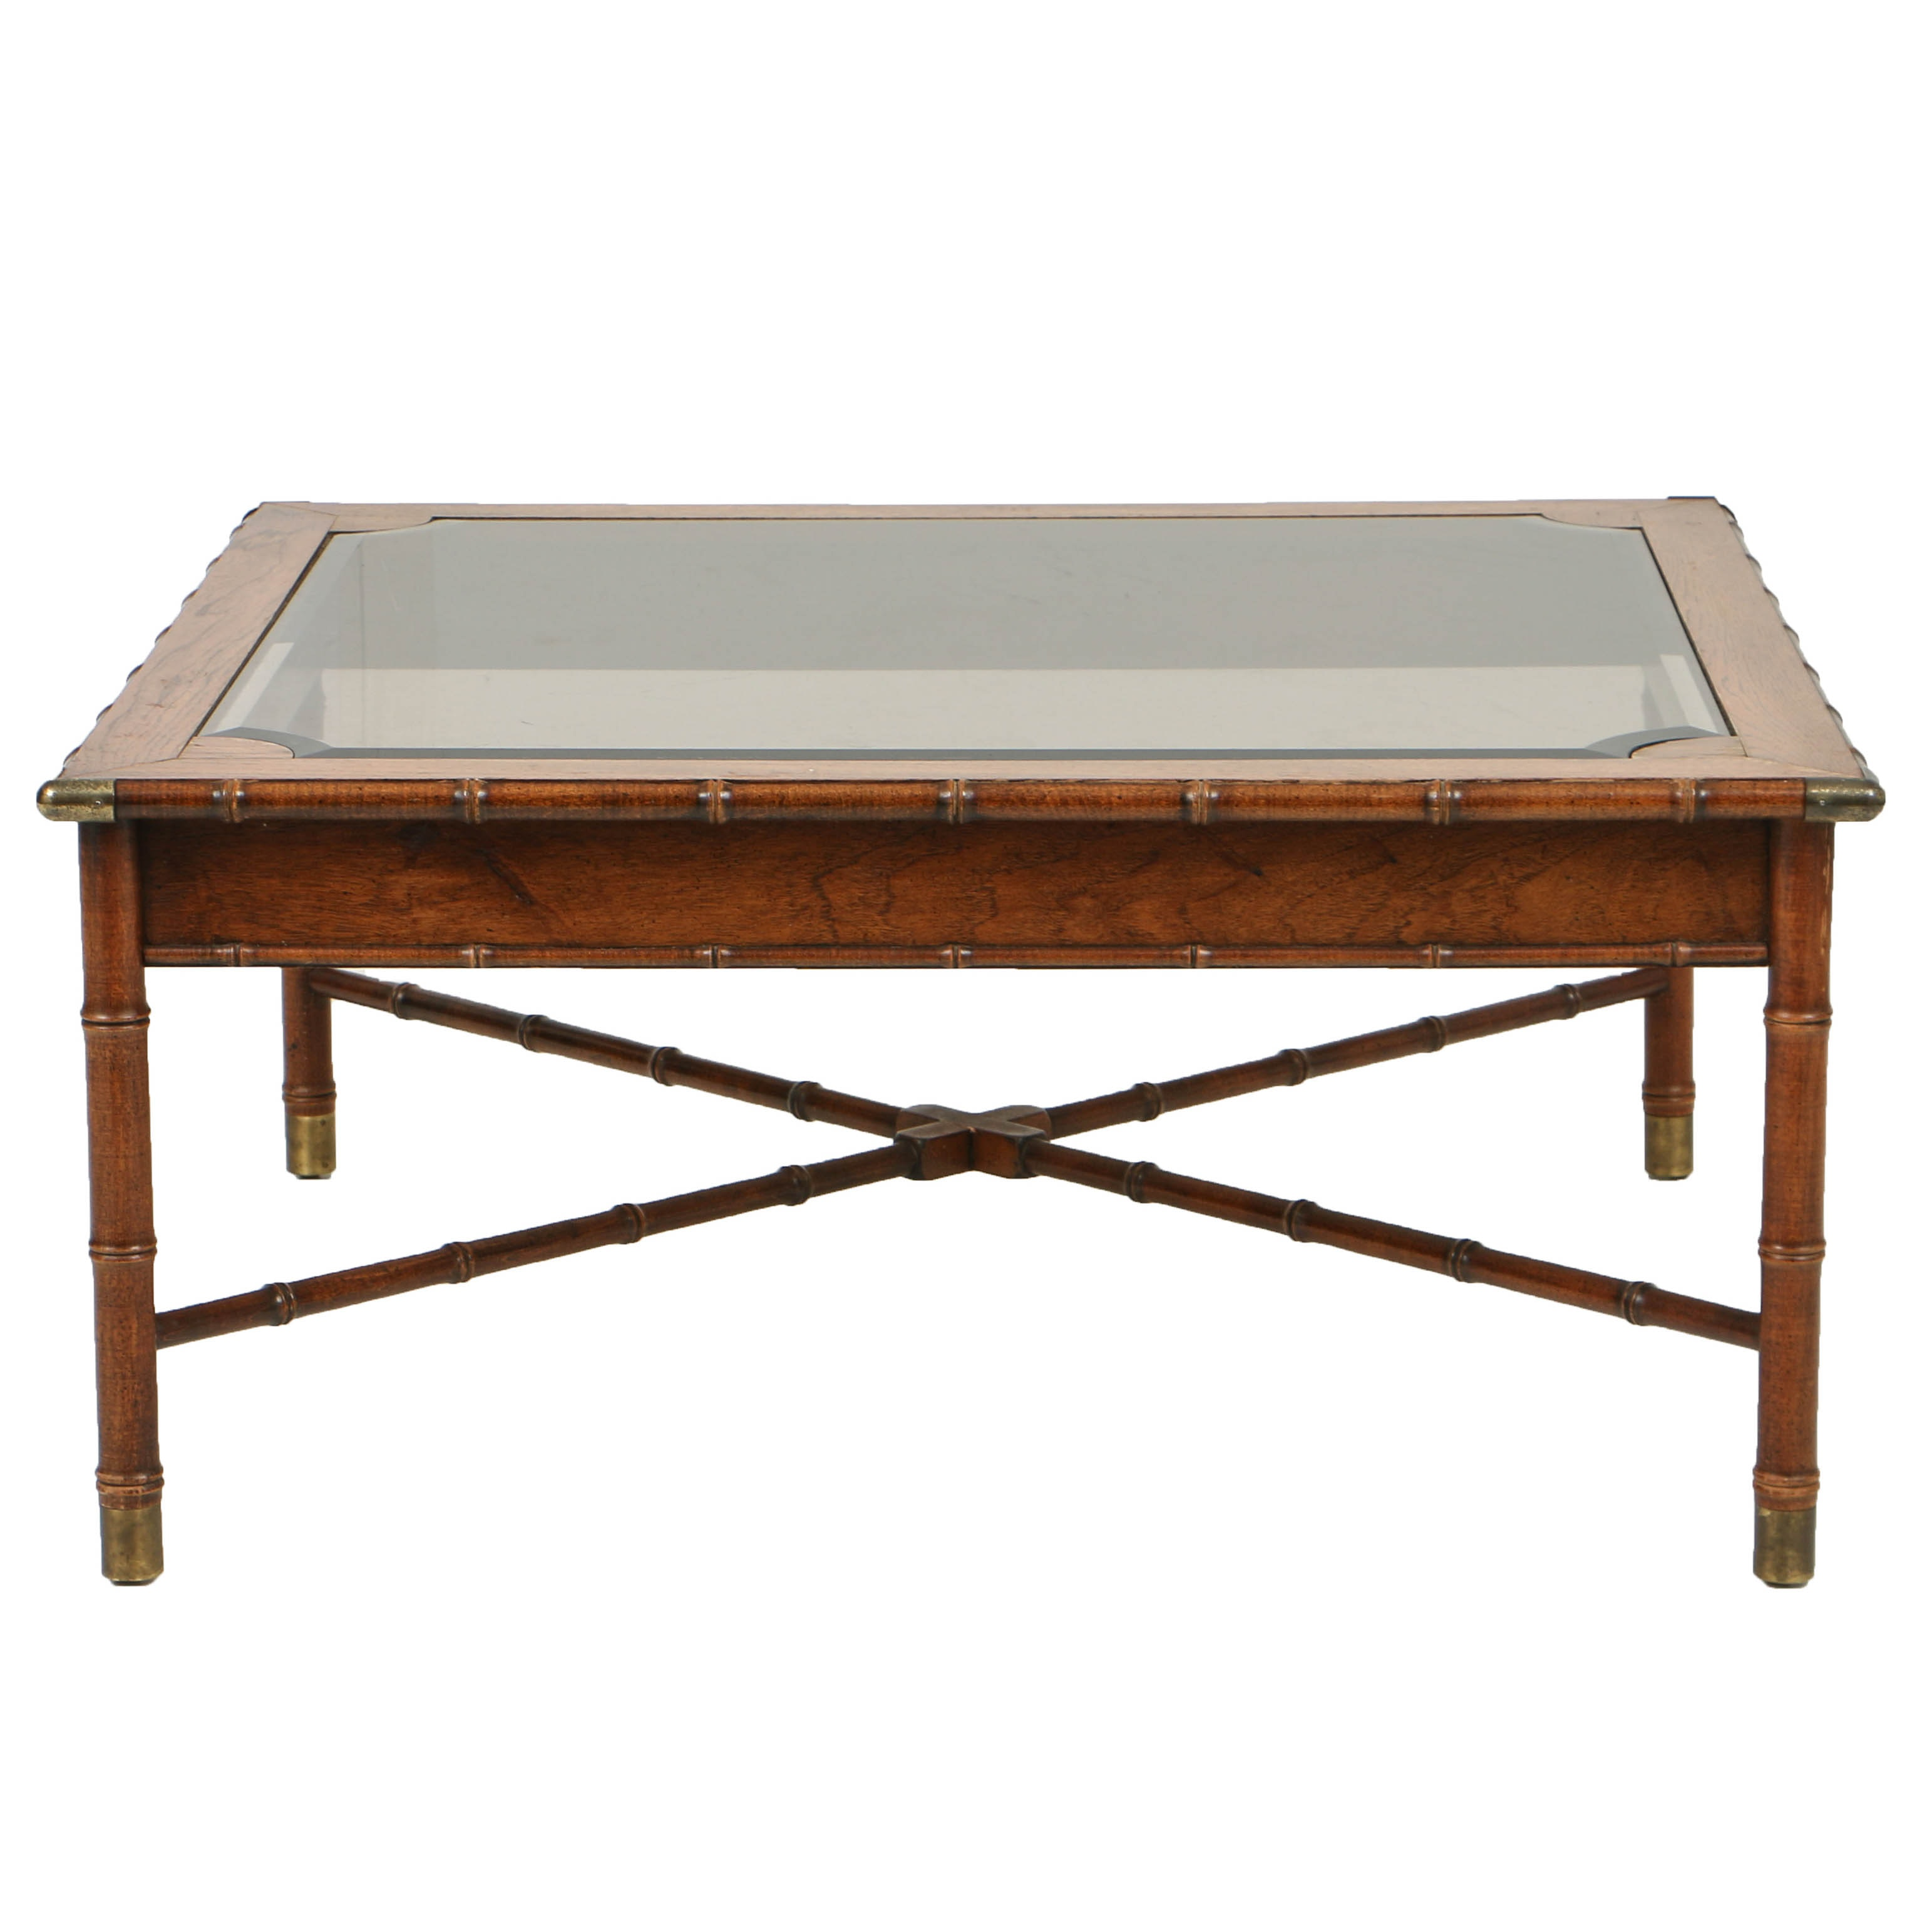 Vintage Faux-Bamboo Coffee Table with Glass Top